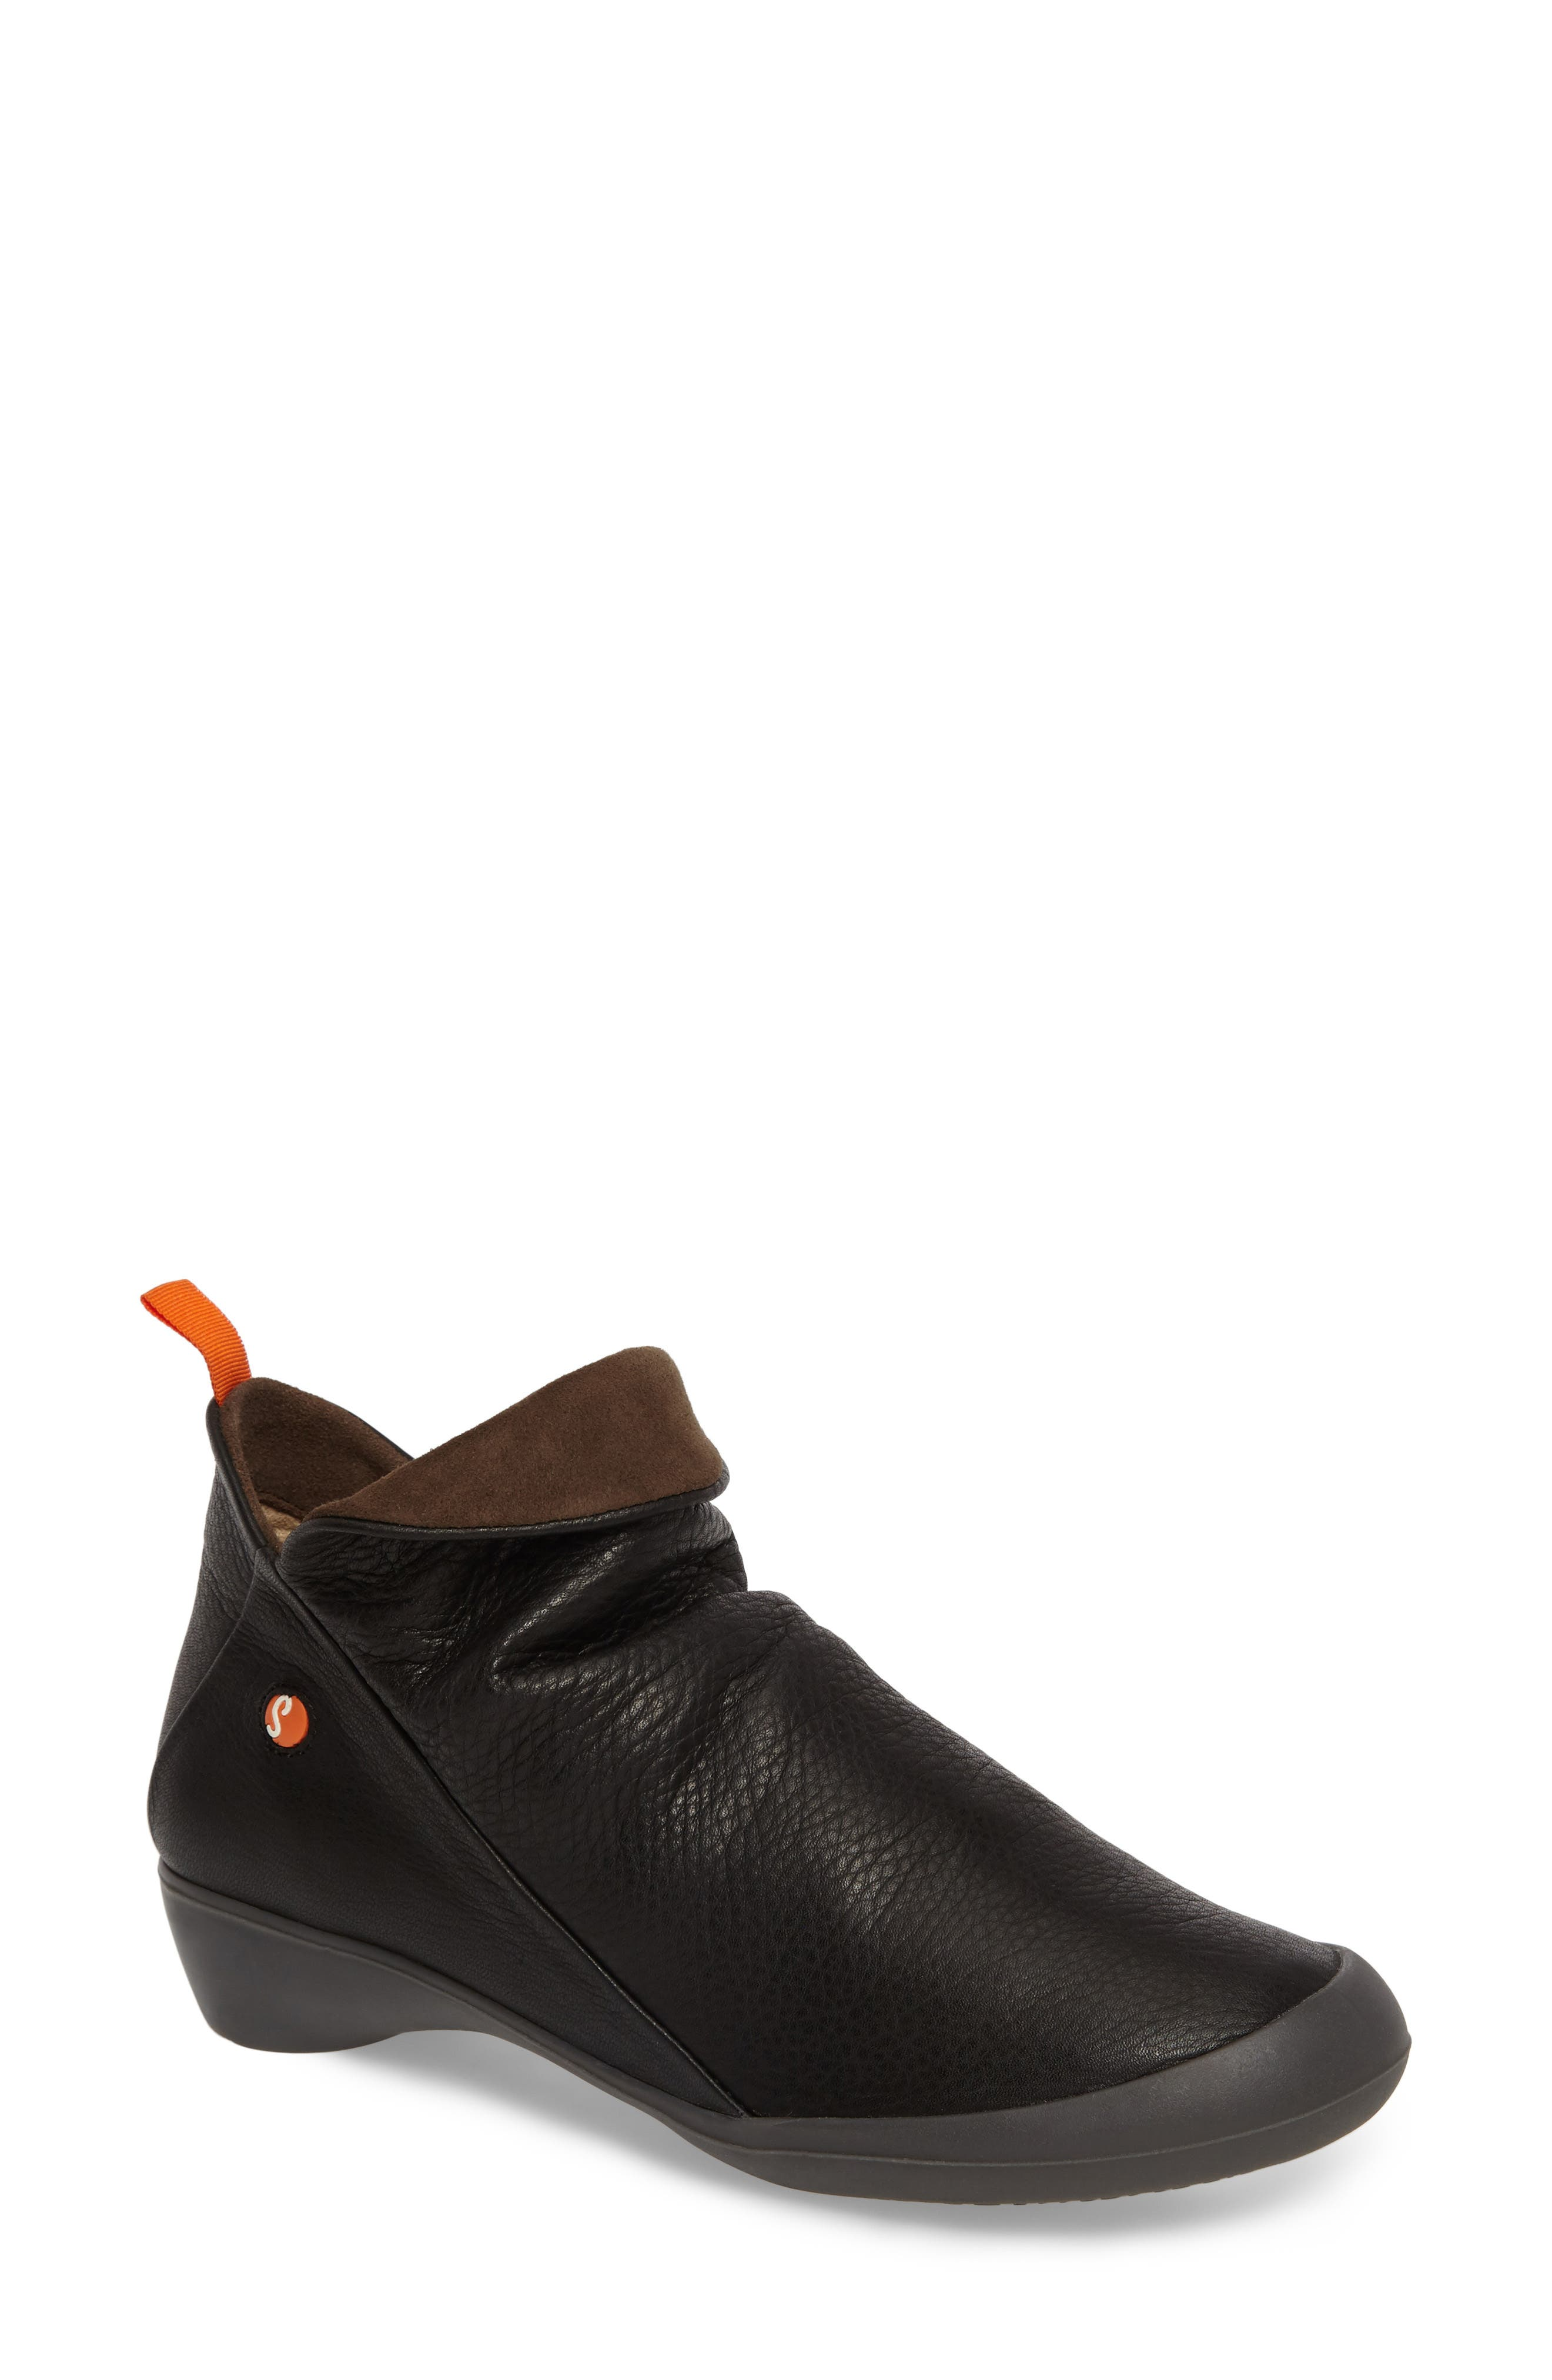 Alternate Image 1 Selected - Softinos by Fly London Farah Bootie (Women)